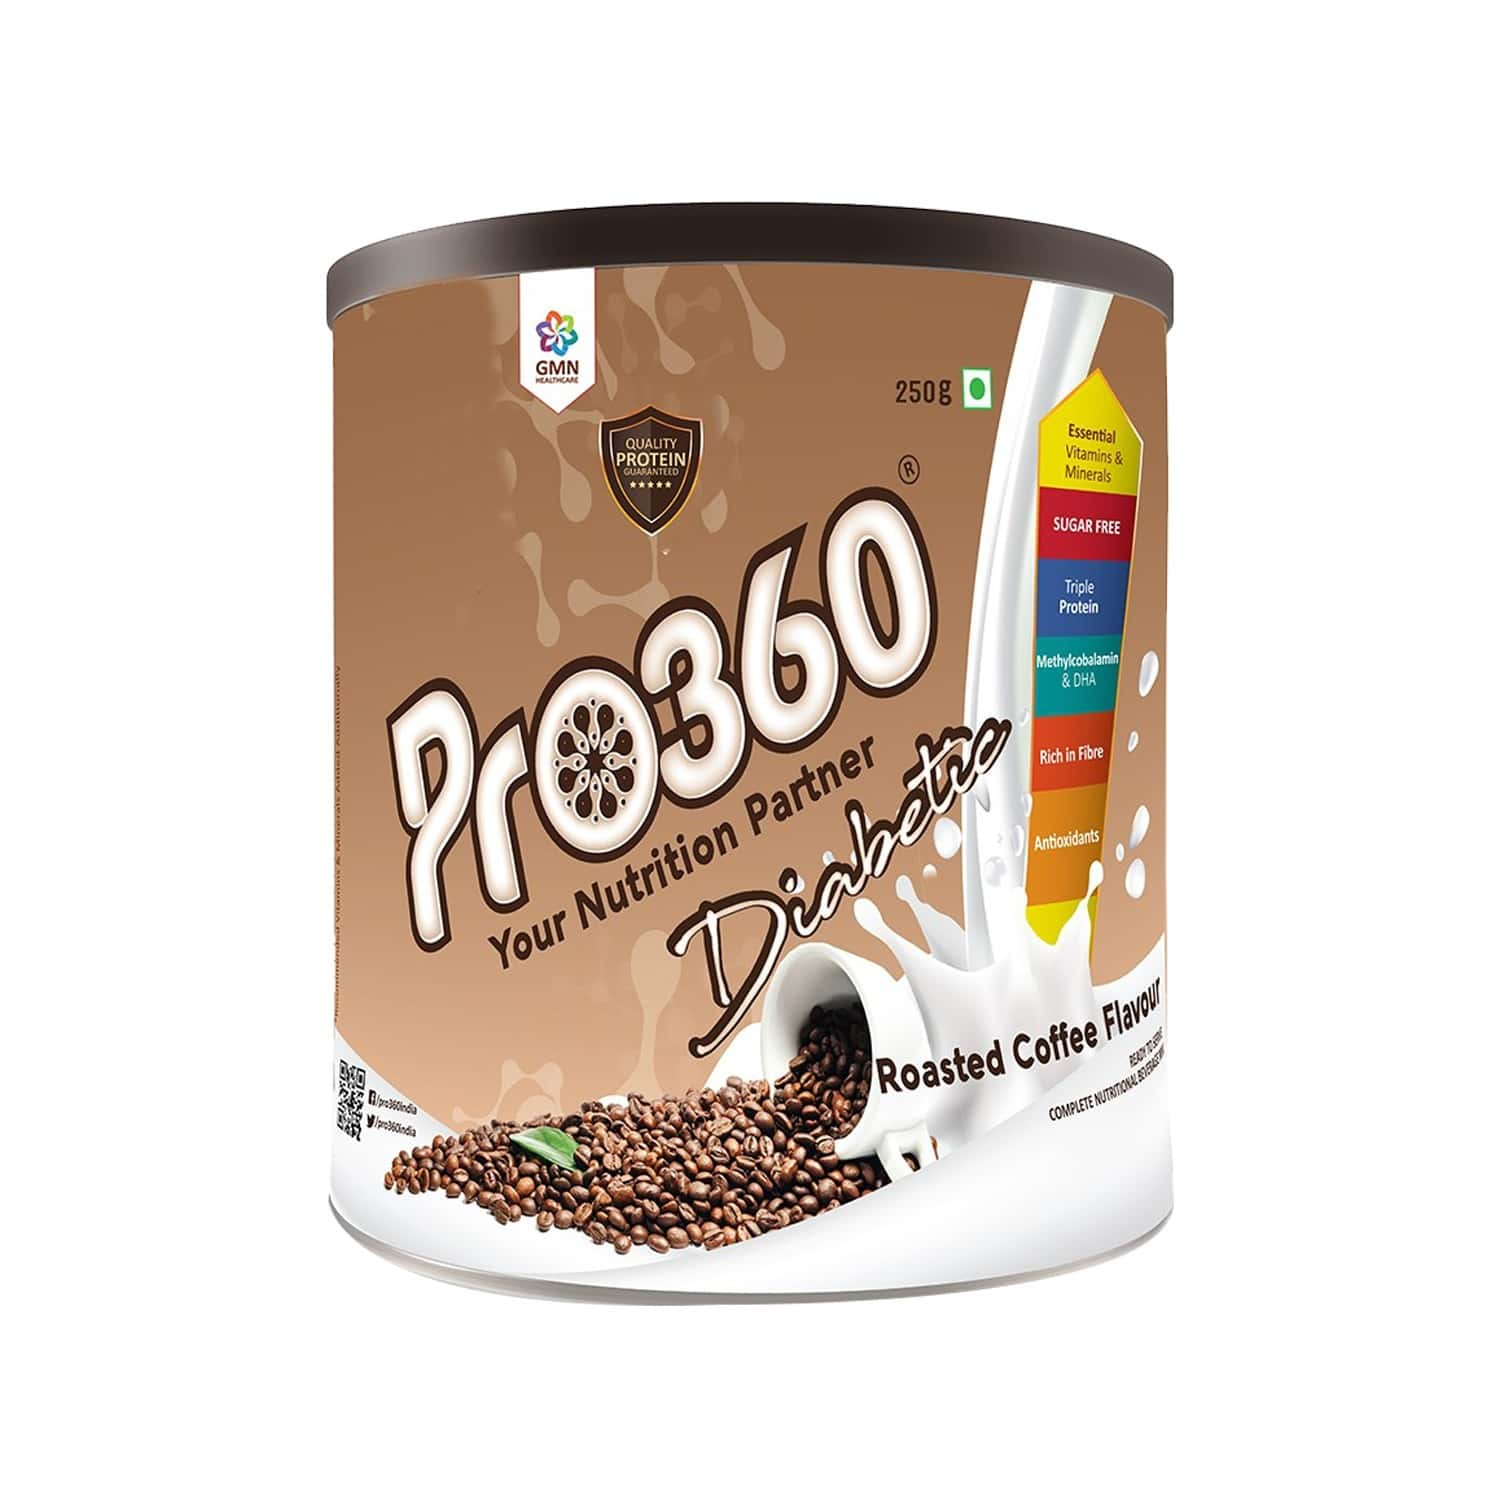 Pro360 Diabetic Nutritional Beverage Mix - Roasted Coffee Flavour - 250gm - Tin